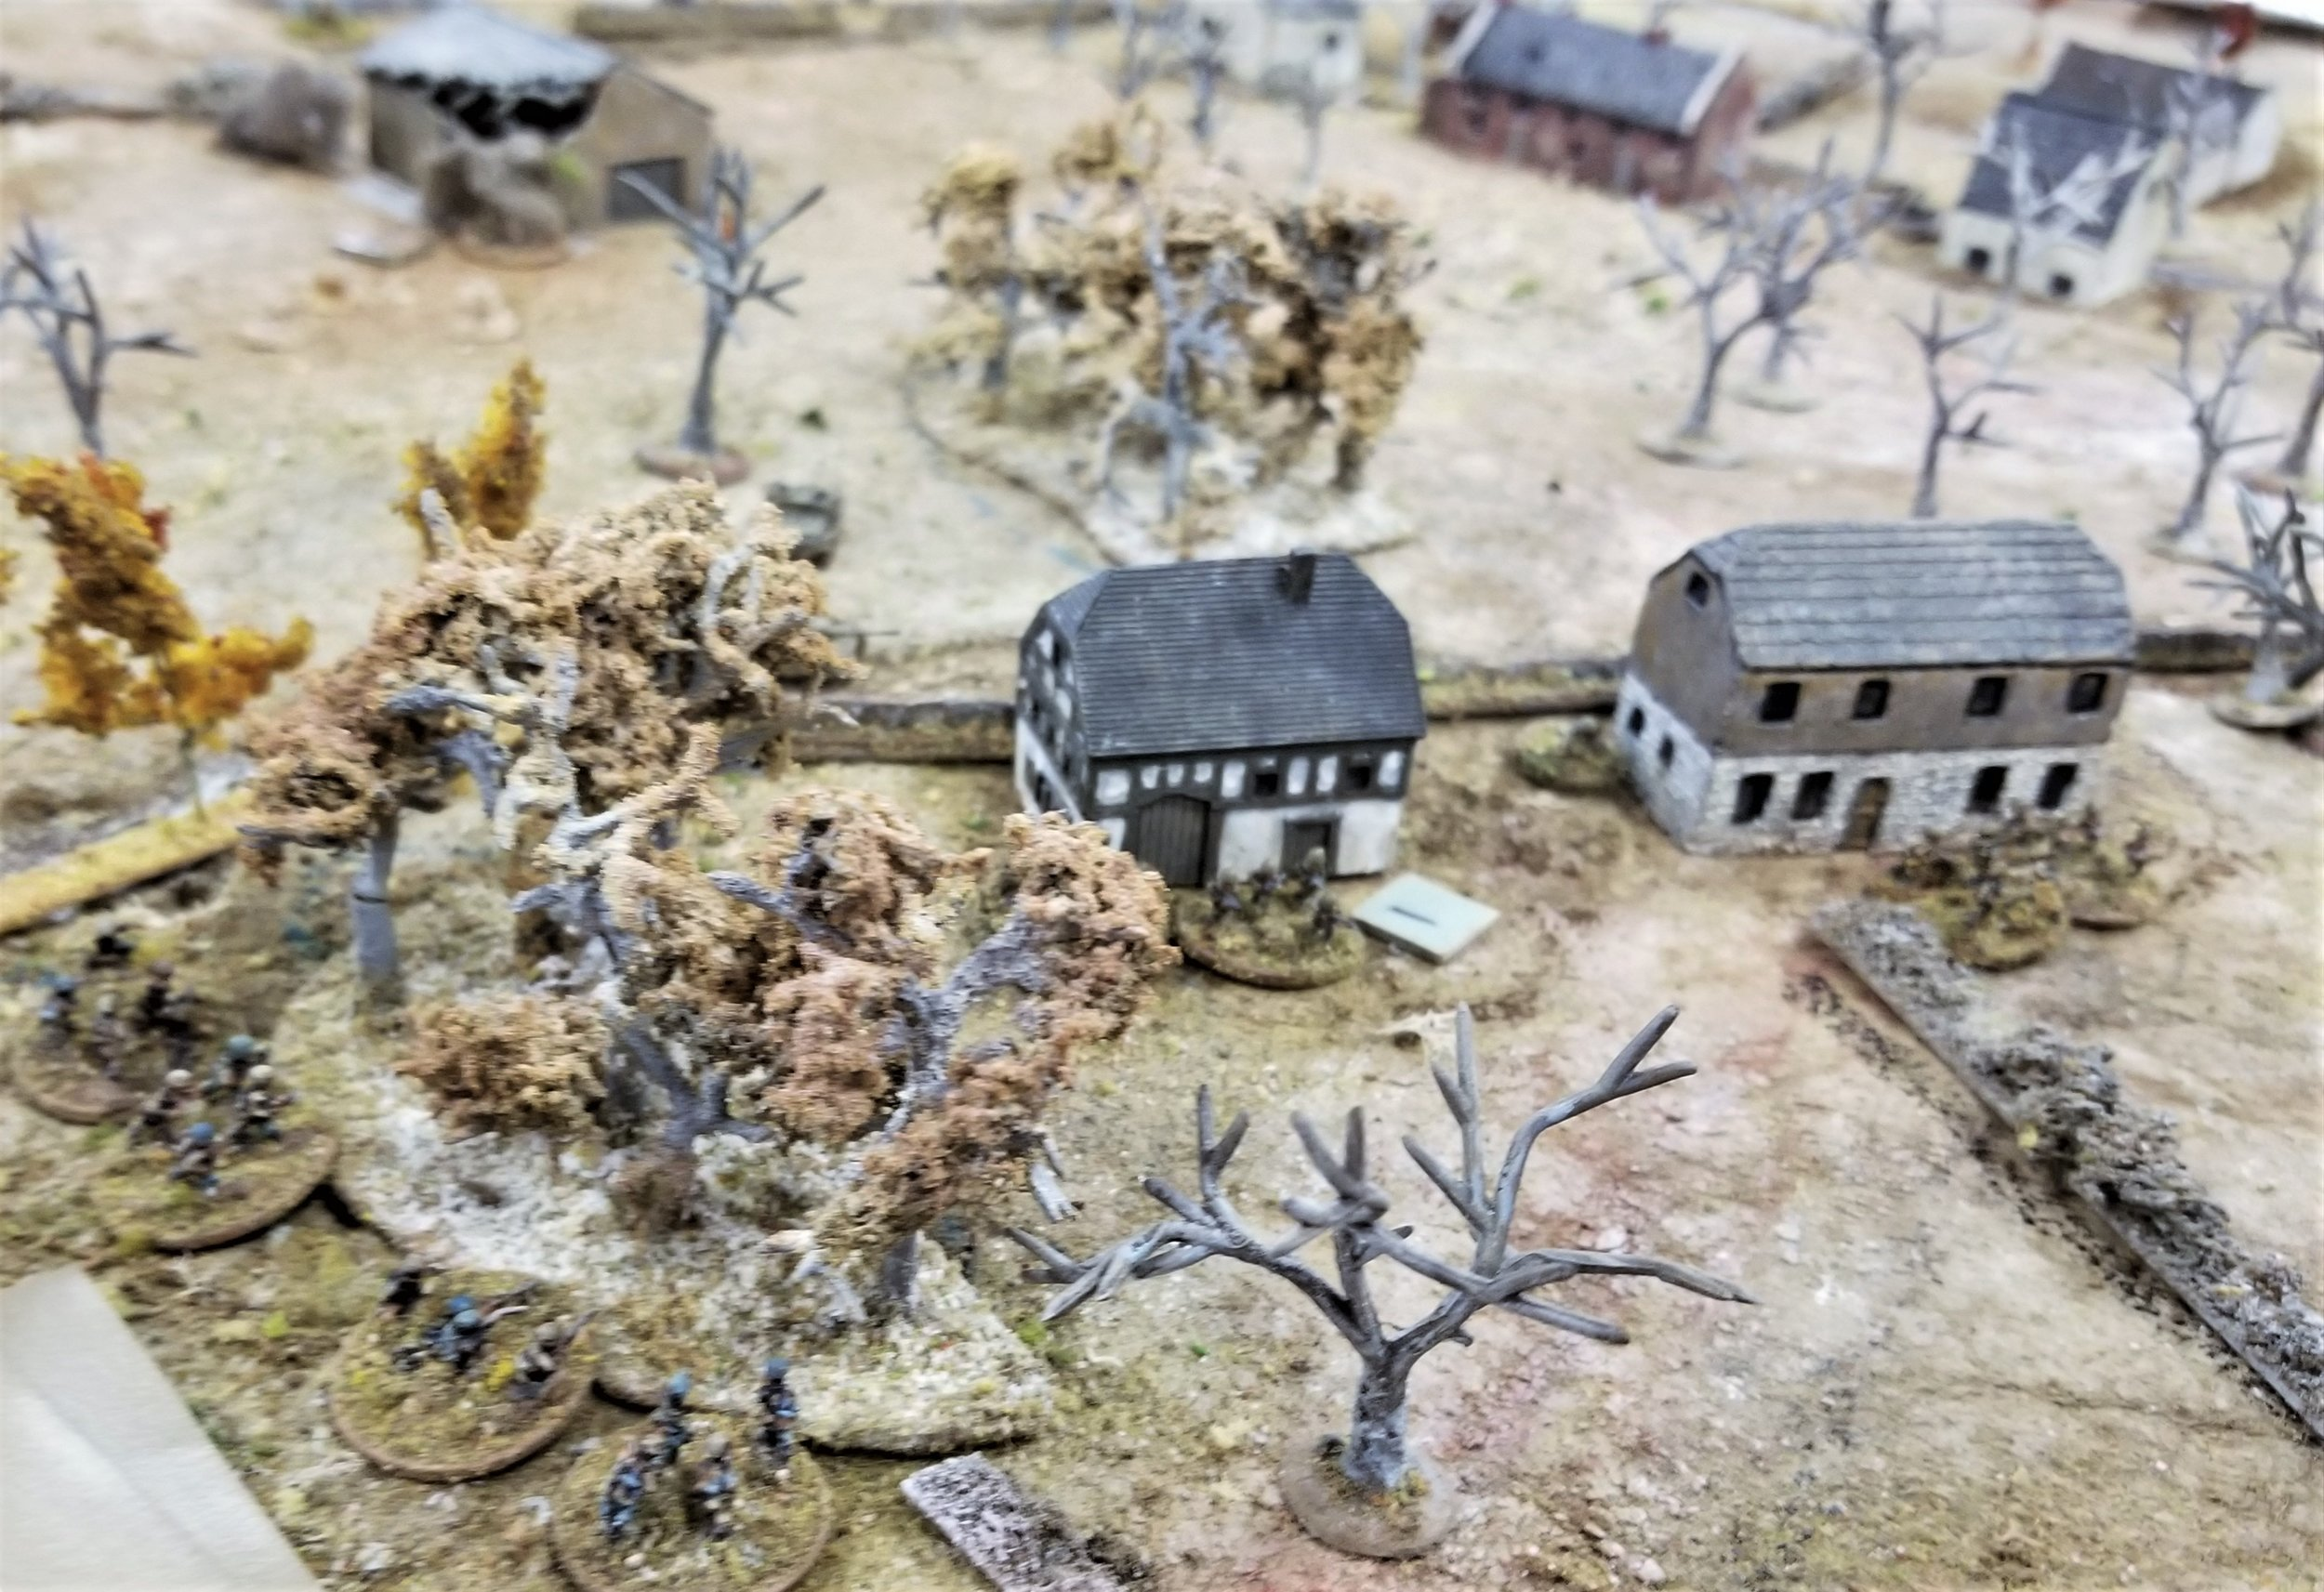 Combat on the west road